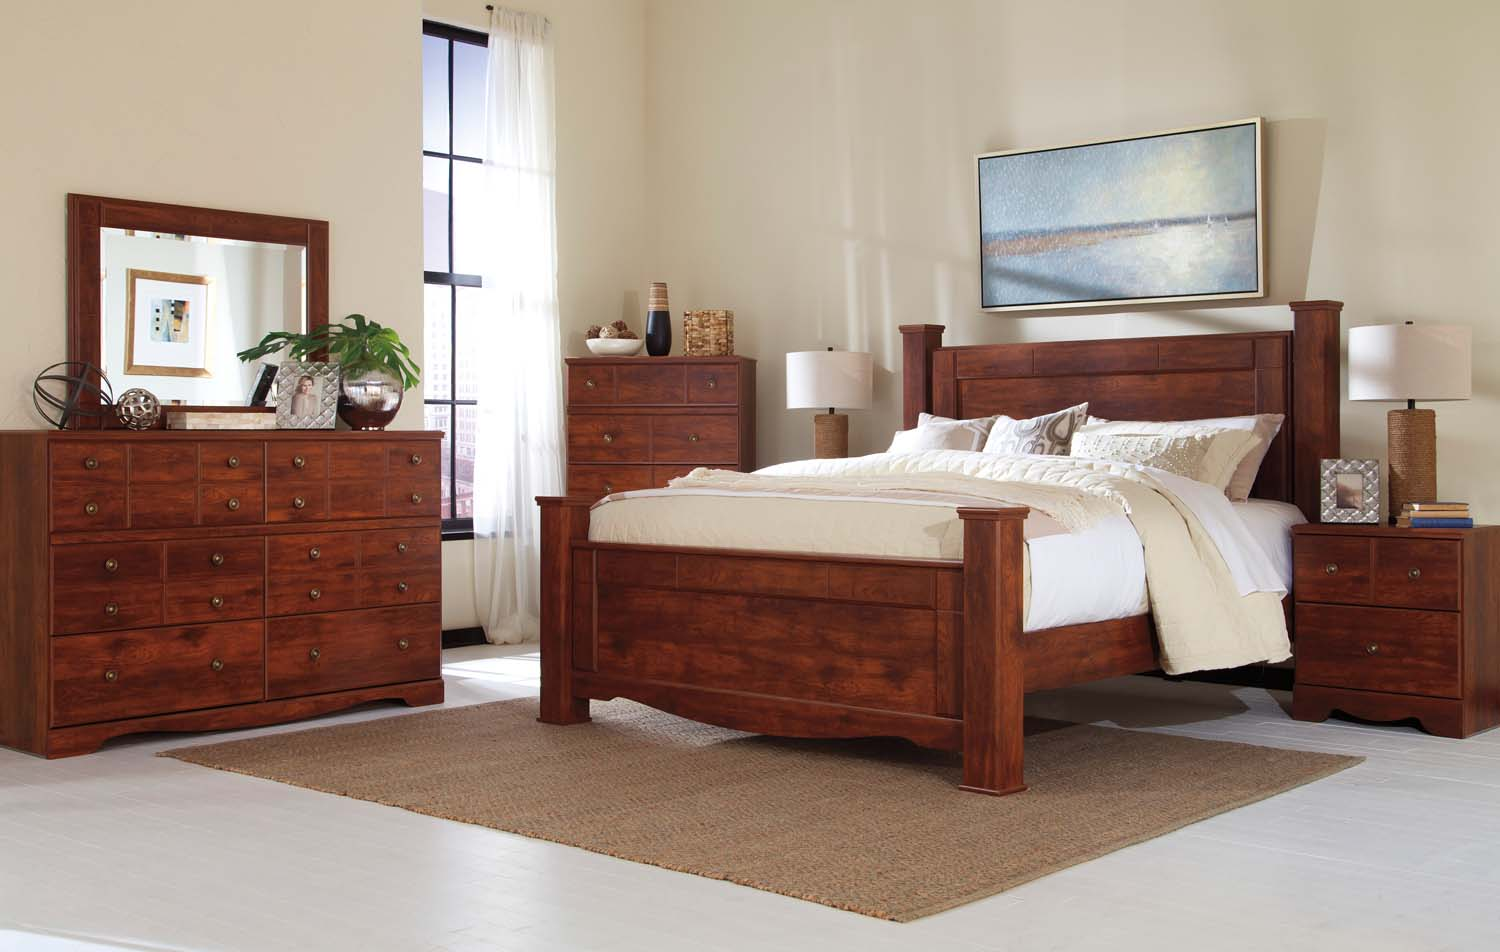 bedroom furniture peoria il | sofa leder ebay